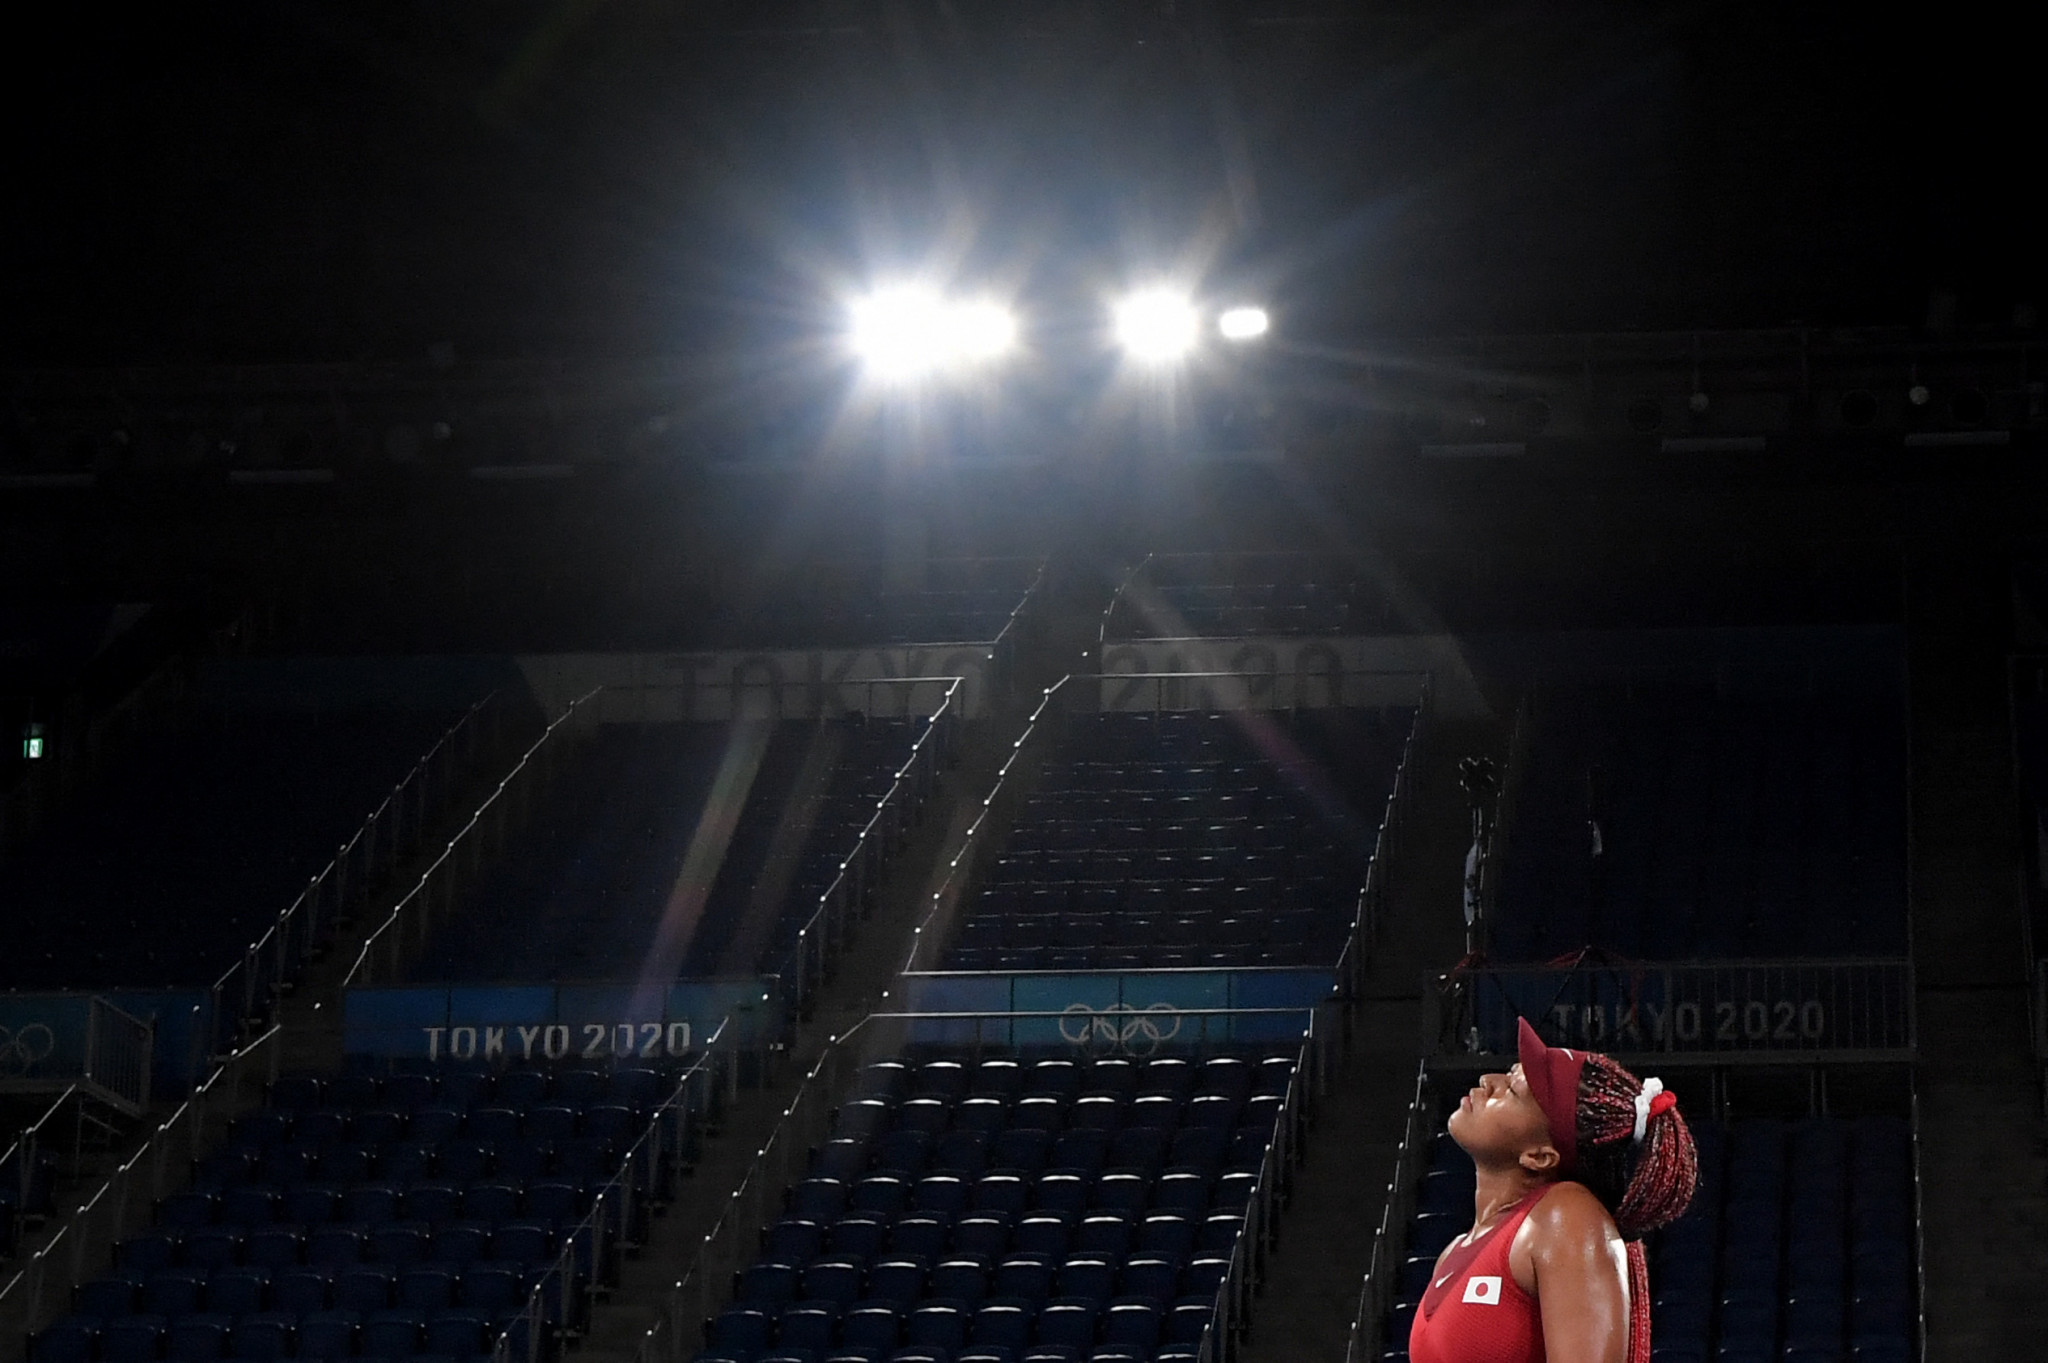 Another of the Games' poster athletes, Naomi Osaka, suffered disappointment, with the Japanese star losing to Czech Markéta Vondroušová in straight sets to exit the women's singles tennis ©Getty Images